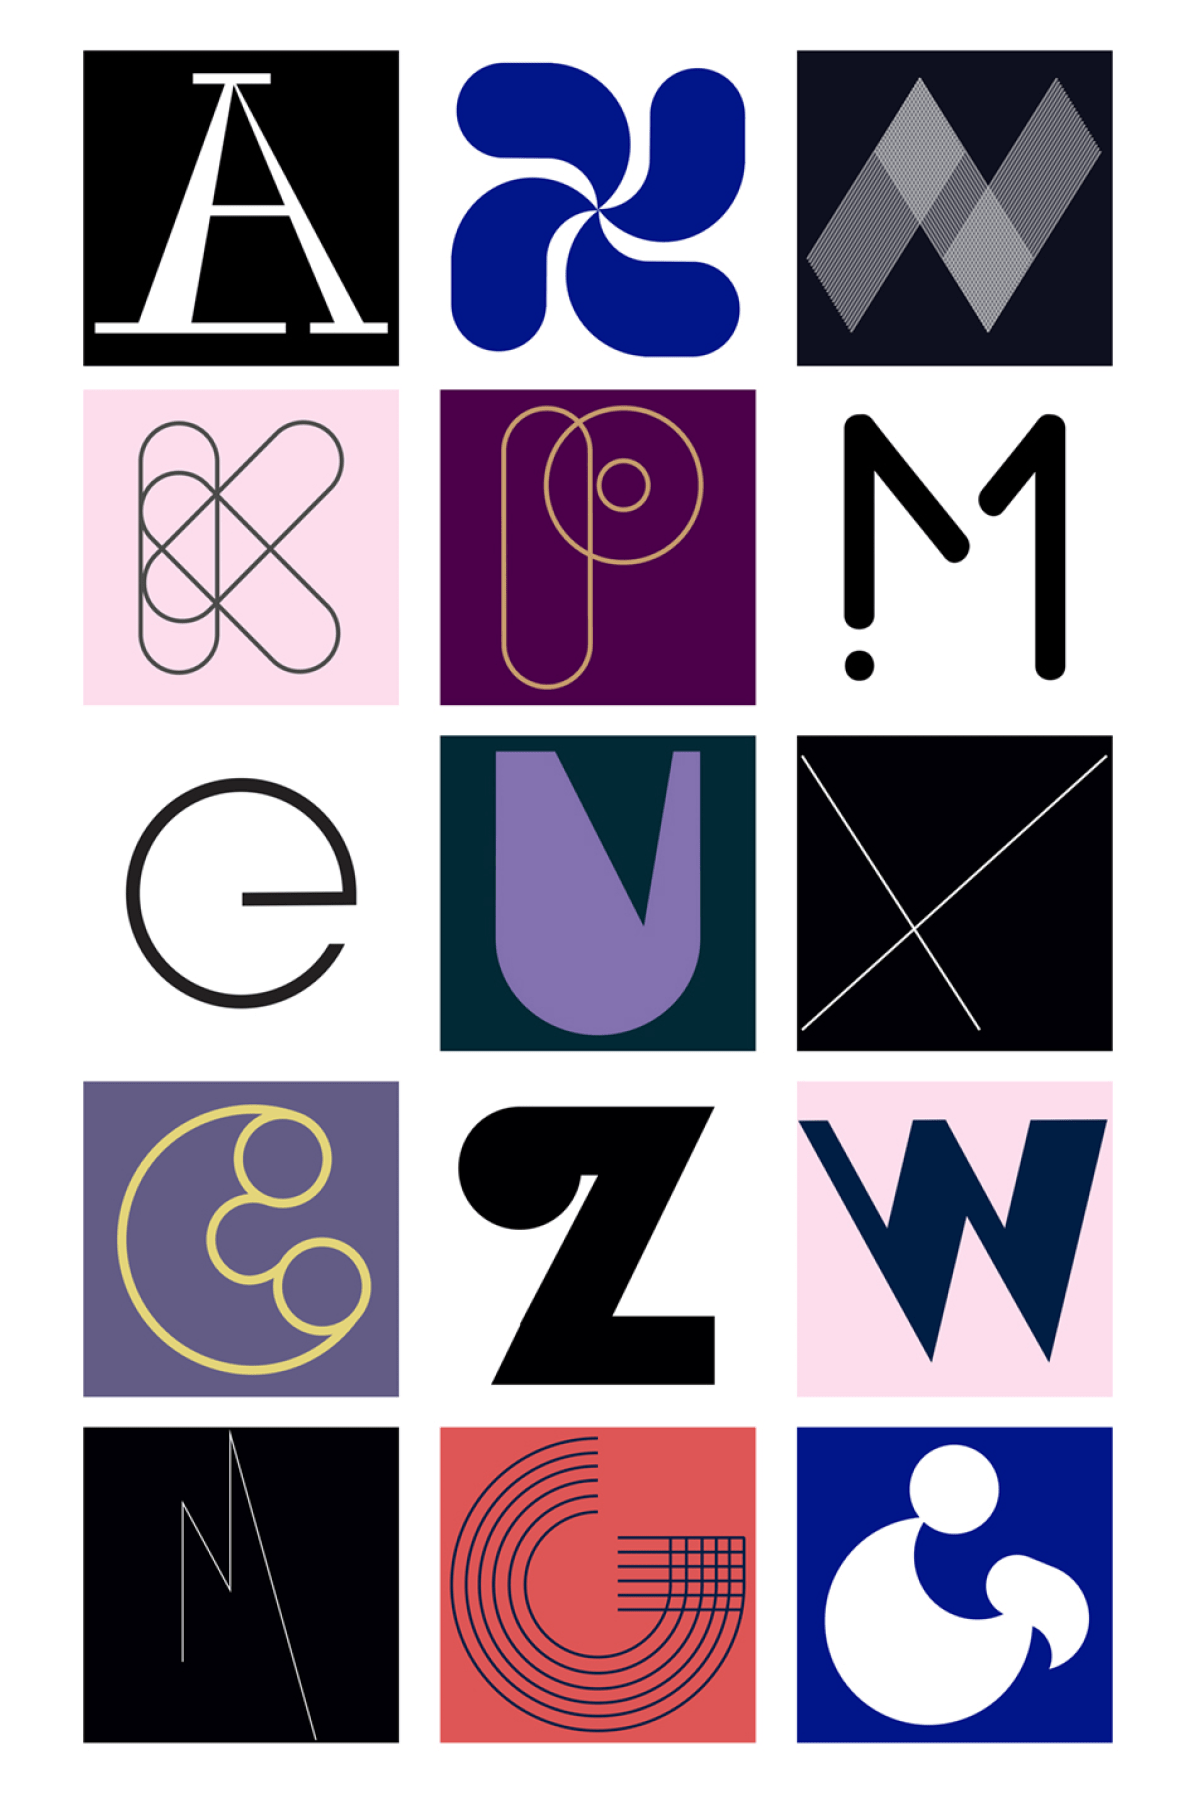 80east Type Specimens